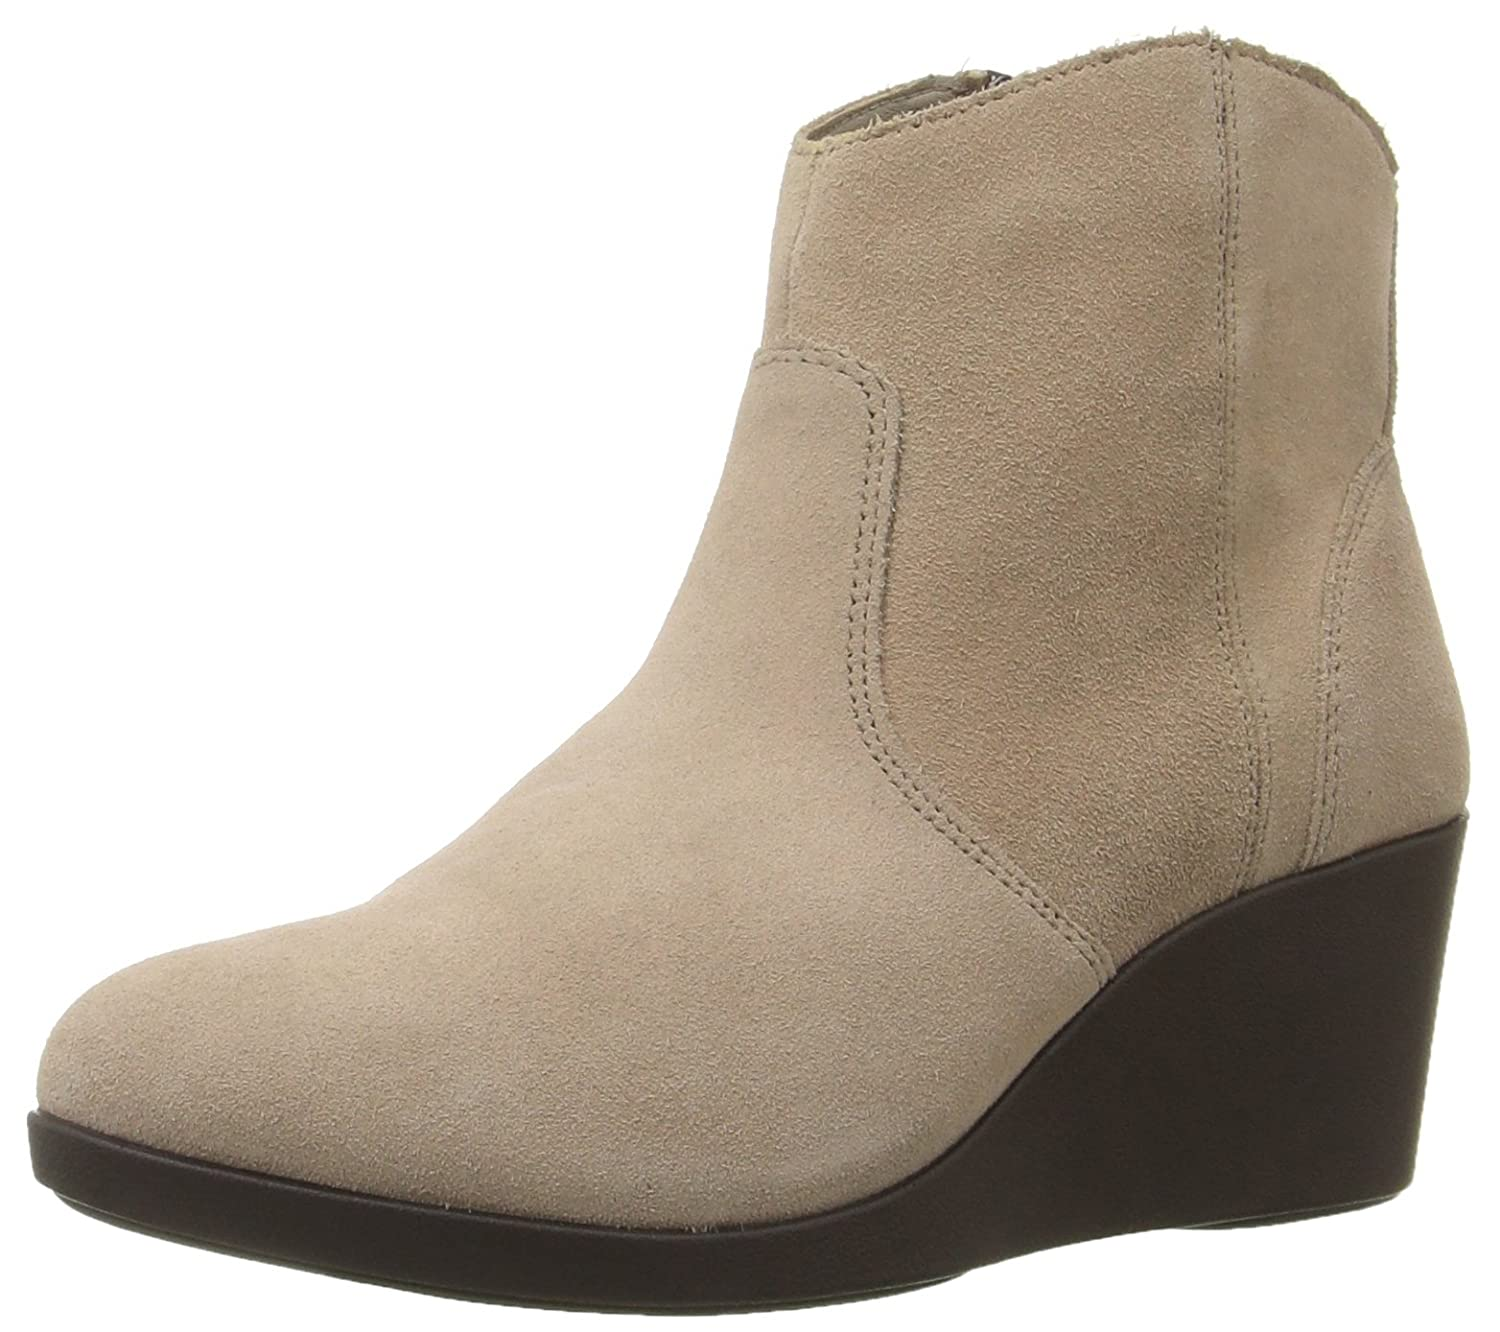 Crocs Women's Leigh Suede Wedge Boot B01A6LL90W 6 B(M) US|Tan